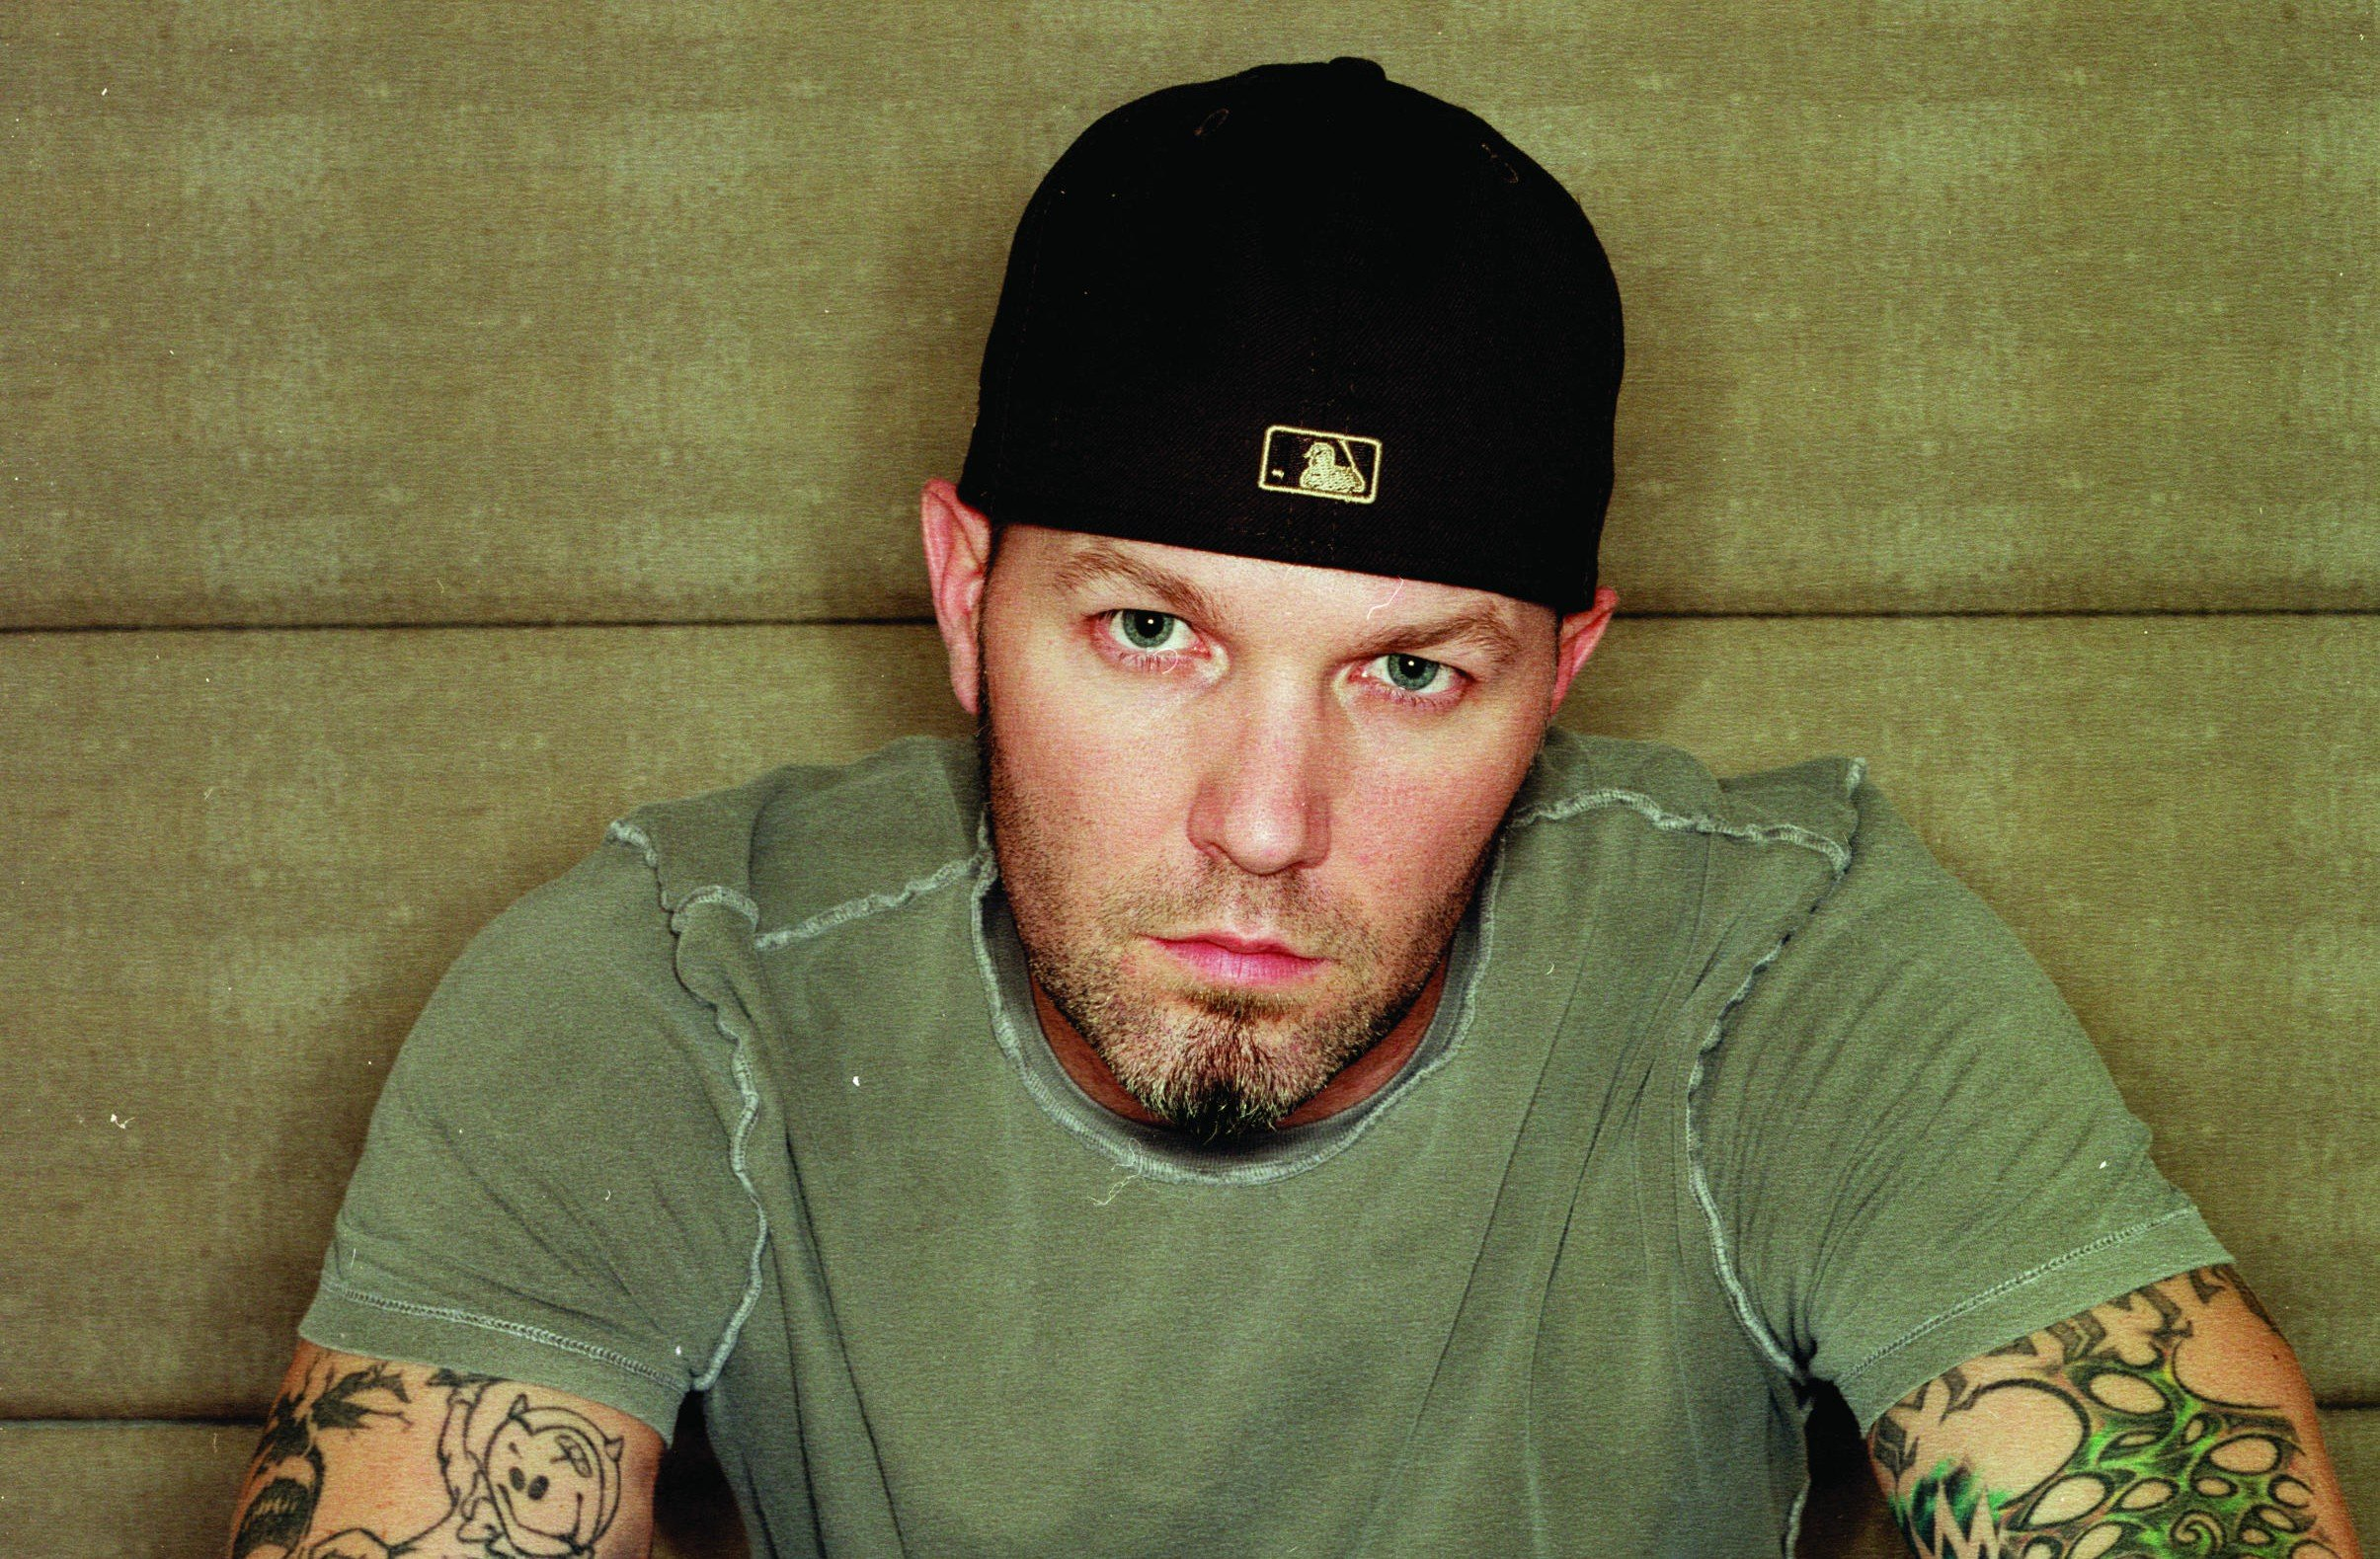 Fred Durst Wallpaper 2410x1579